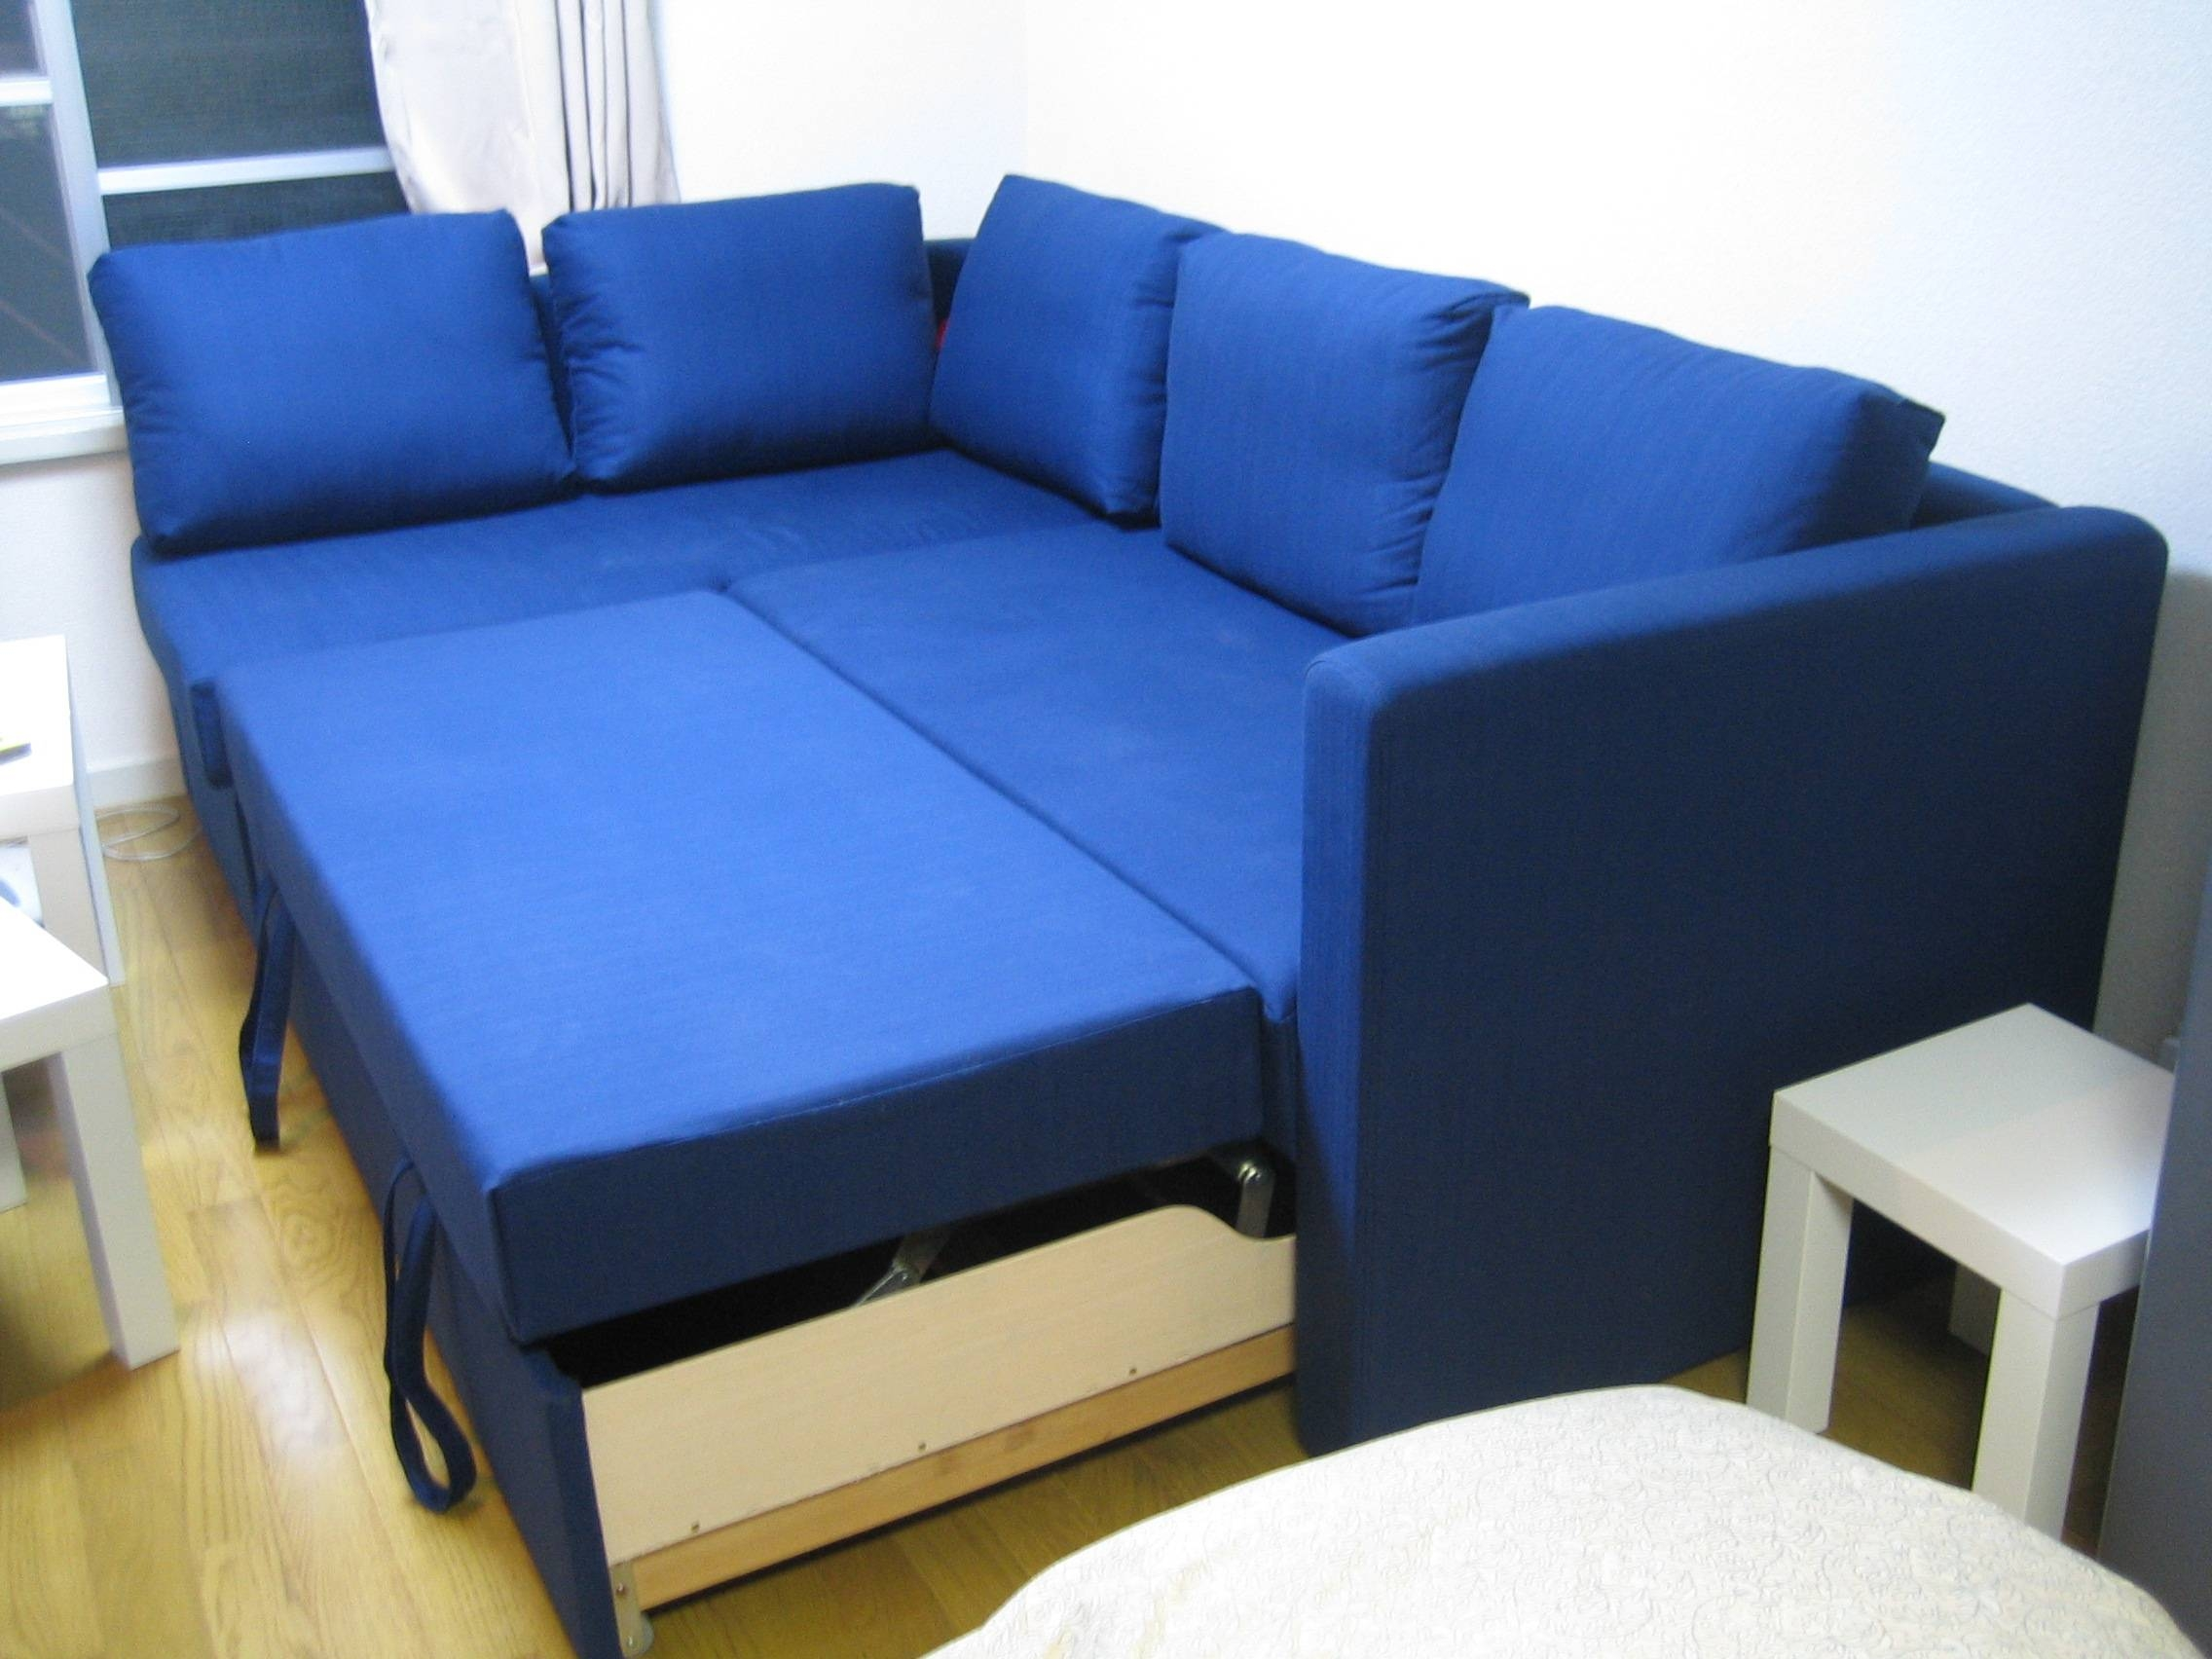 Furniture: Sleeper Sofa Ikea | Sleeper Sectional Sofa | Target Couches regarding Sleeper Sectional Sofa Ikea (Image 8 of 25)